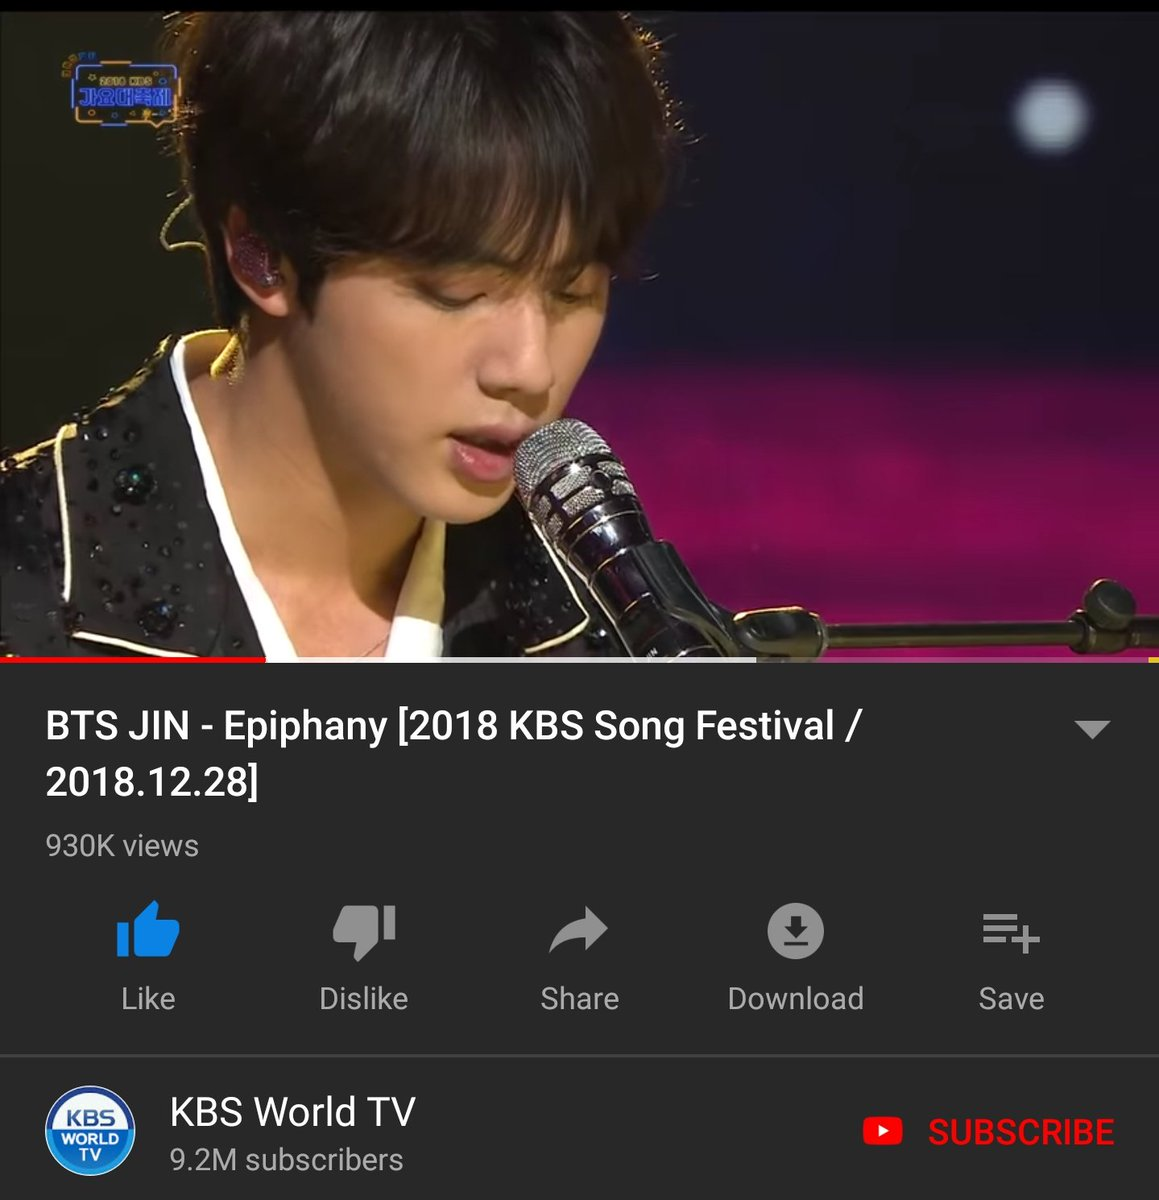 Omg so close to 1M for this best performance with masterpiece song  please 70k more    https:// youtu.be/9H1sp76Ao8w  &nbsp;    #방탄소년단 #방탄진 #진 #석진 #김석진 #BTS #JIN #방탄소년단진 @BTS_twt #Epiphany <br>http://pic.twitter.com/l67AesIliu